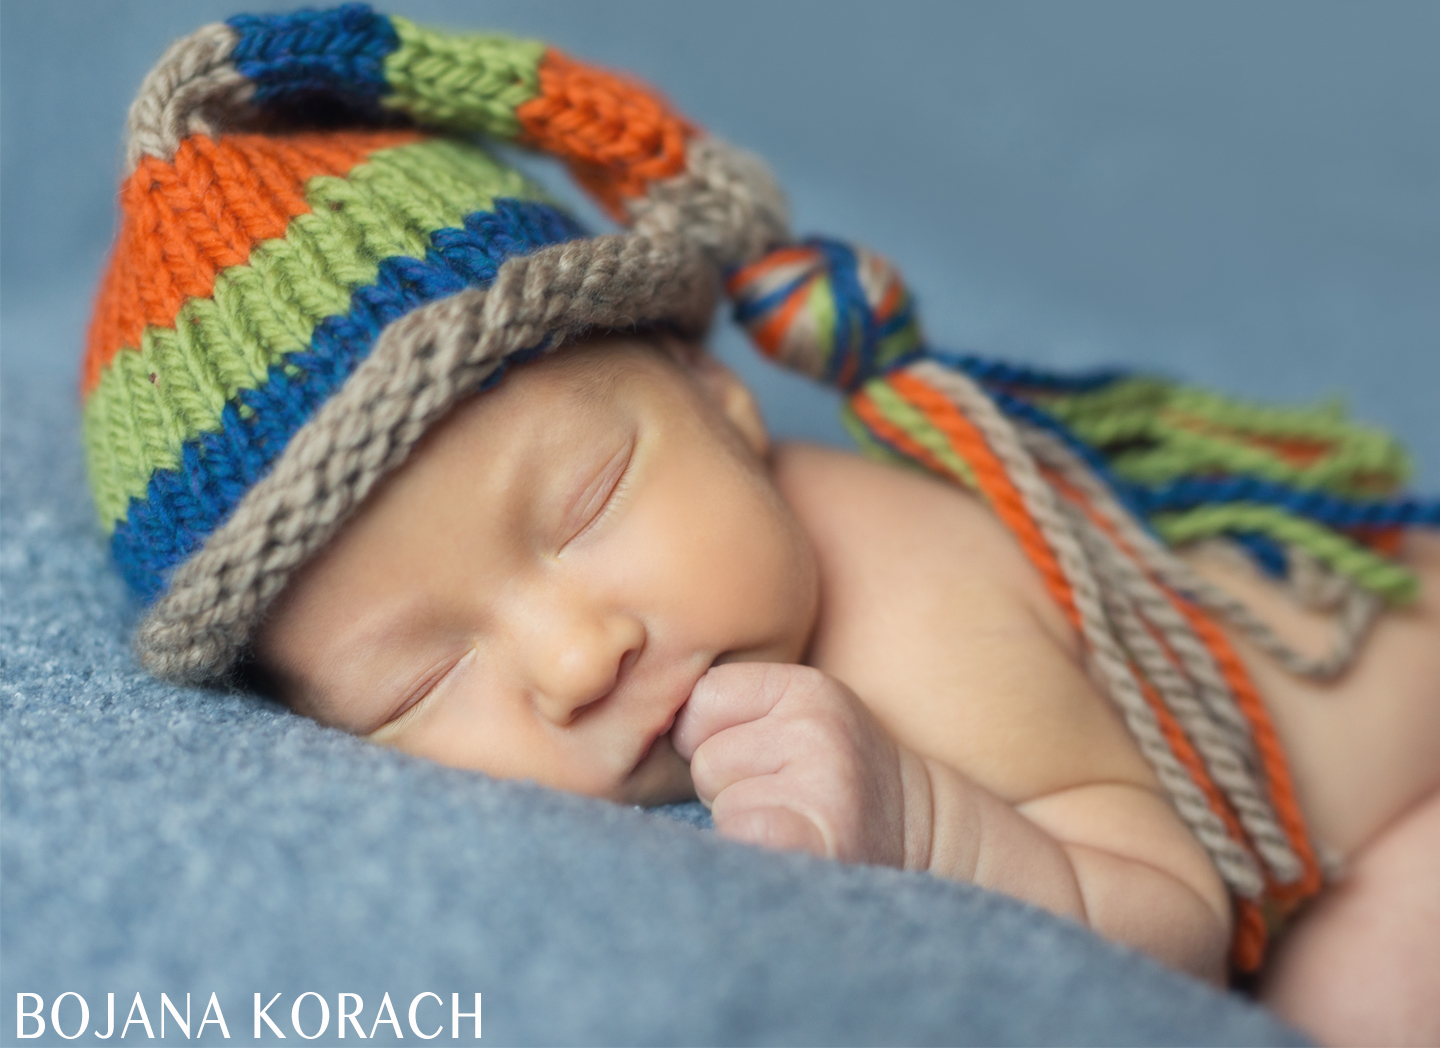 burlingame-newborn-baby-photographer